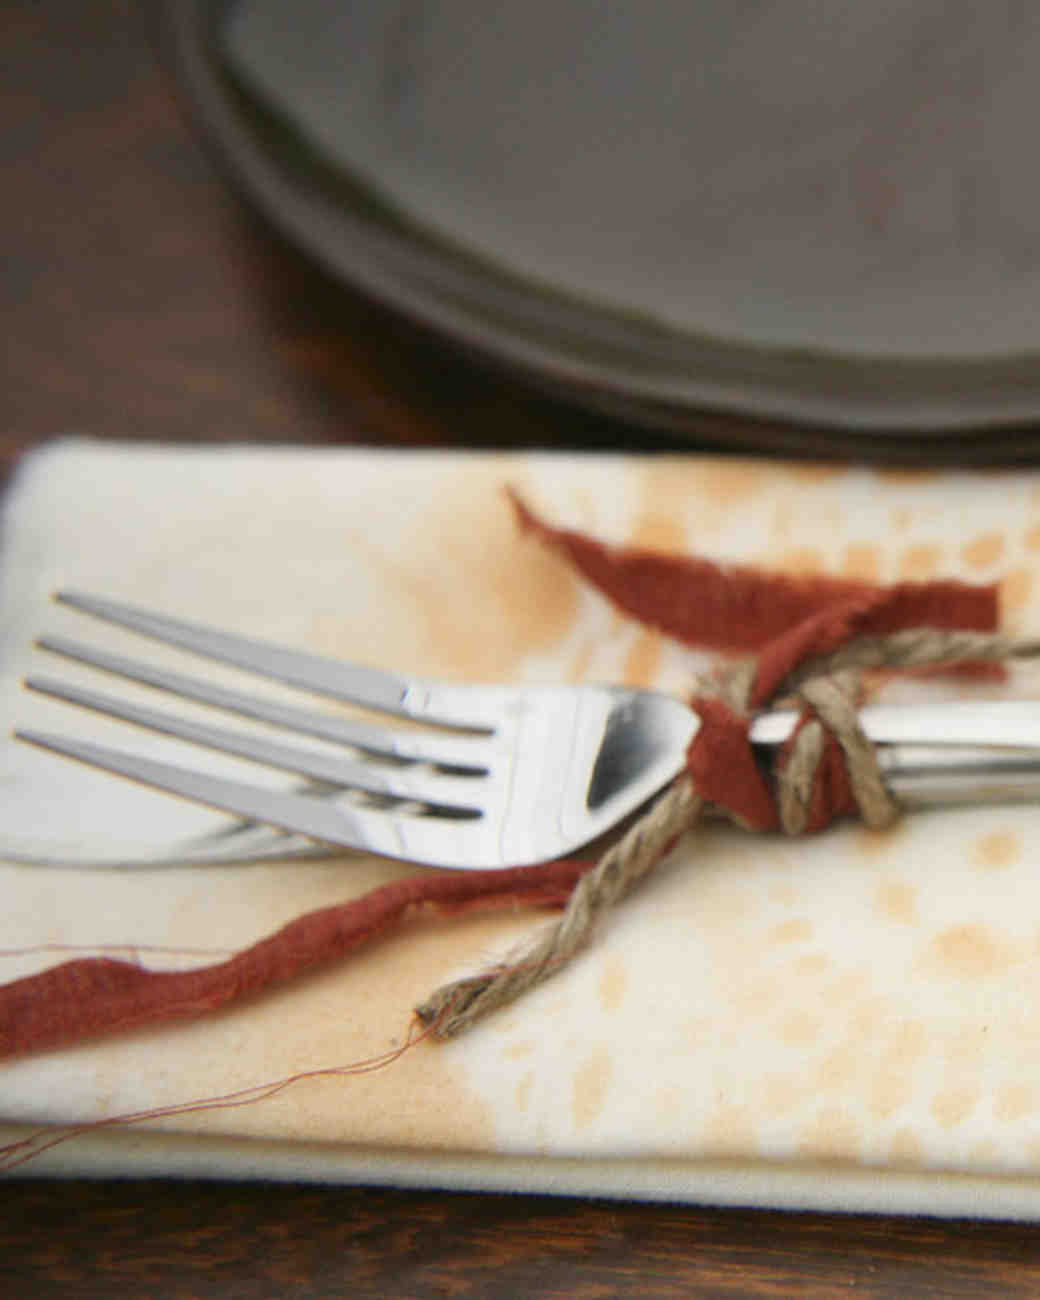 msw_sum09_fork_and_napkin.jpg